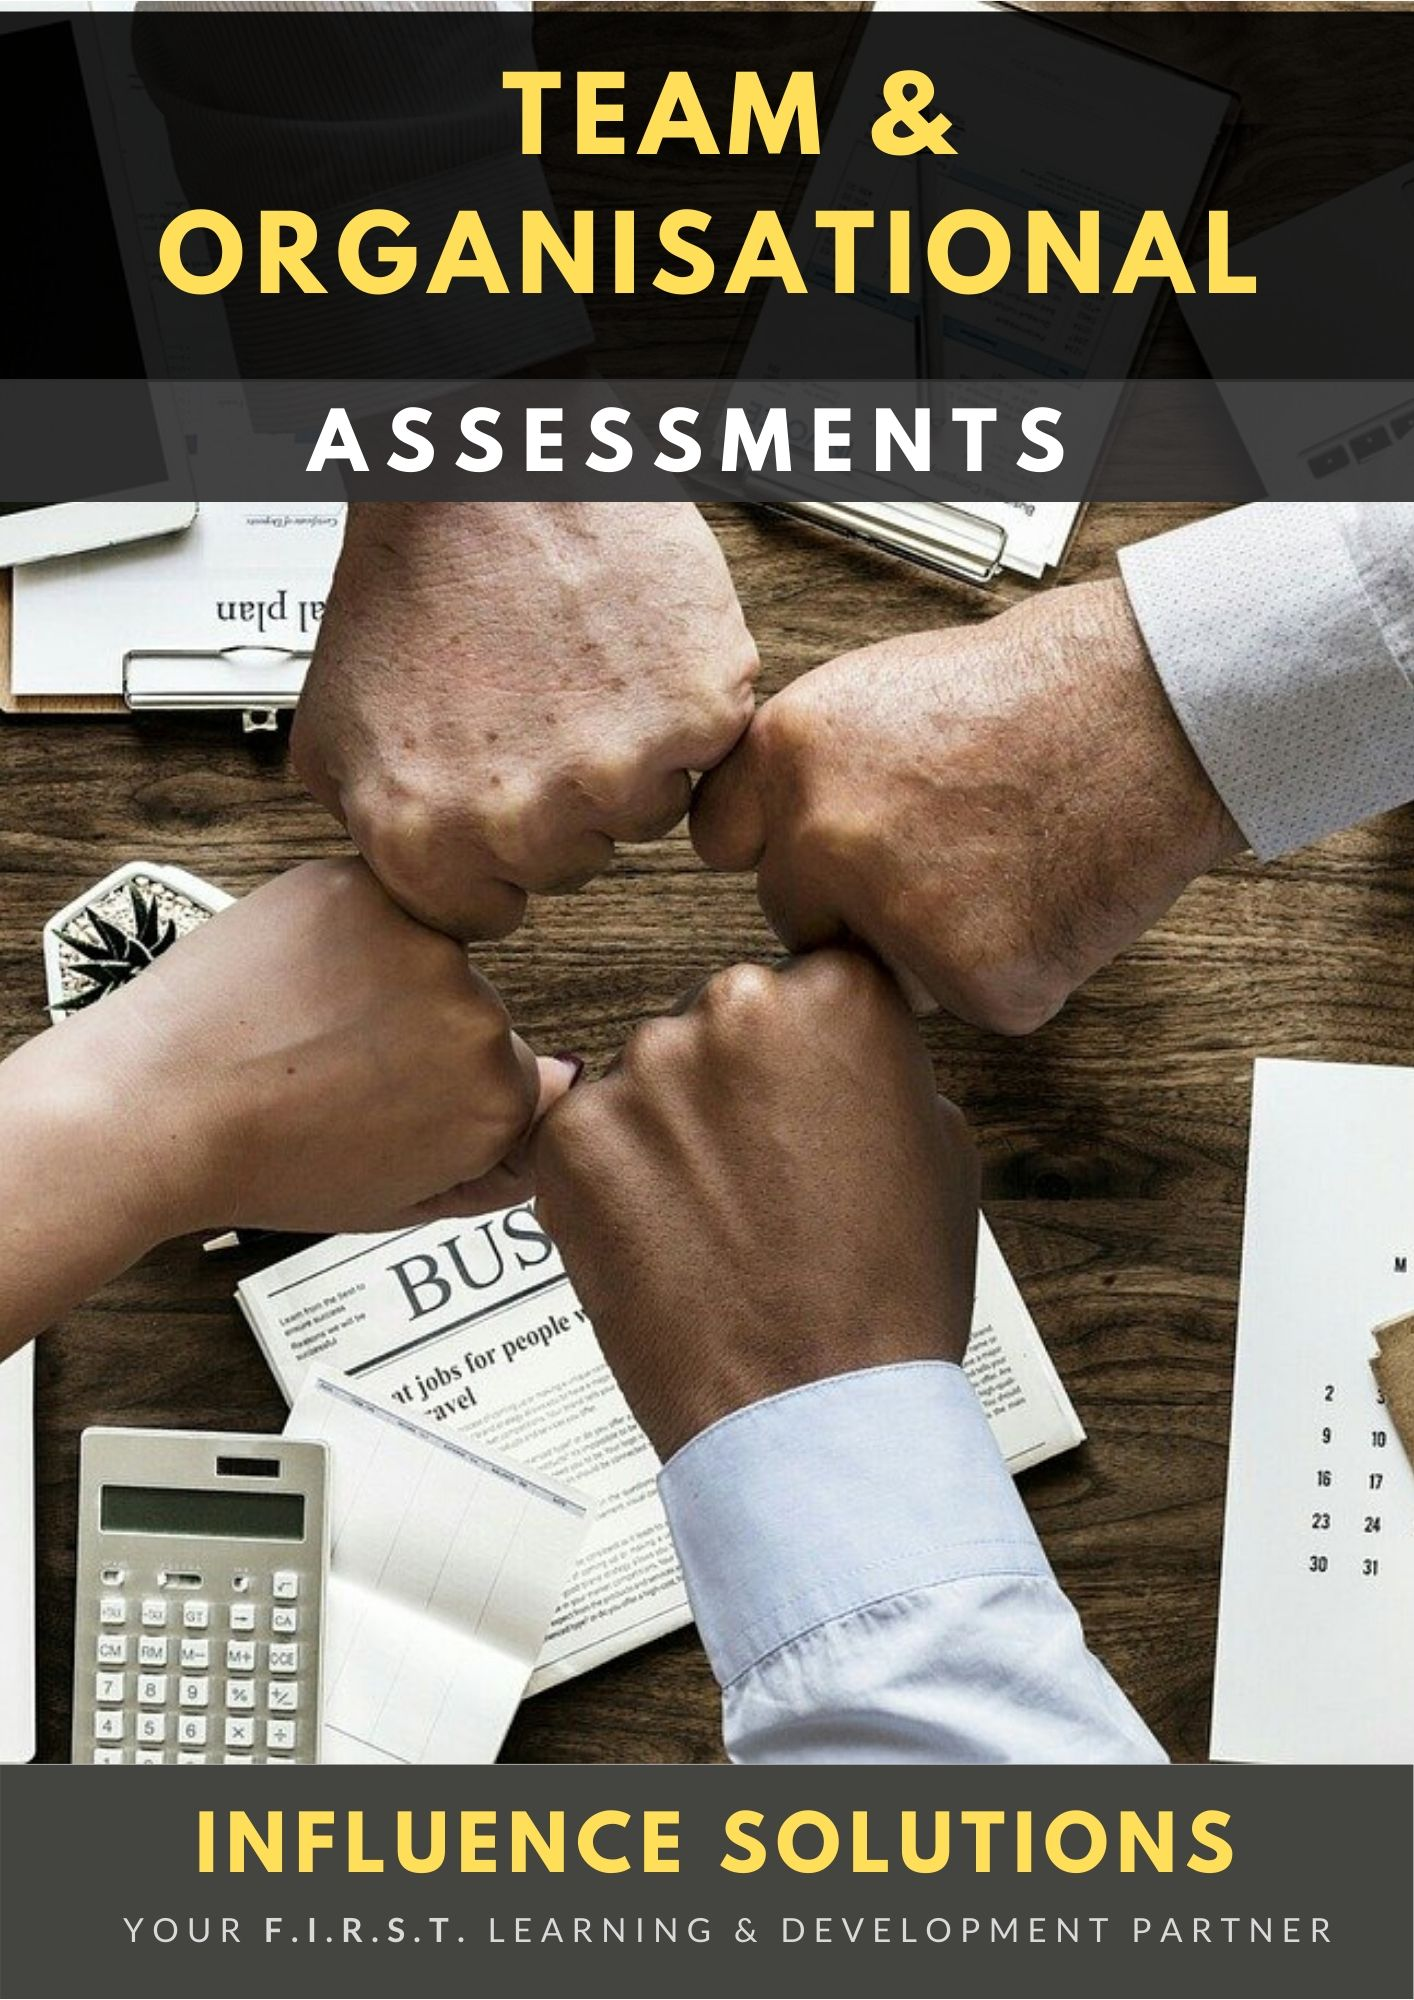 Team & Organisational Assessments